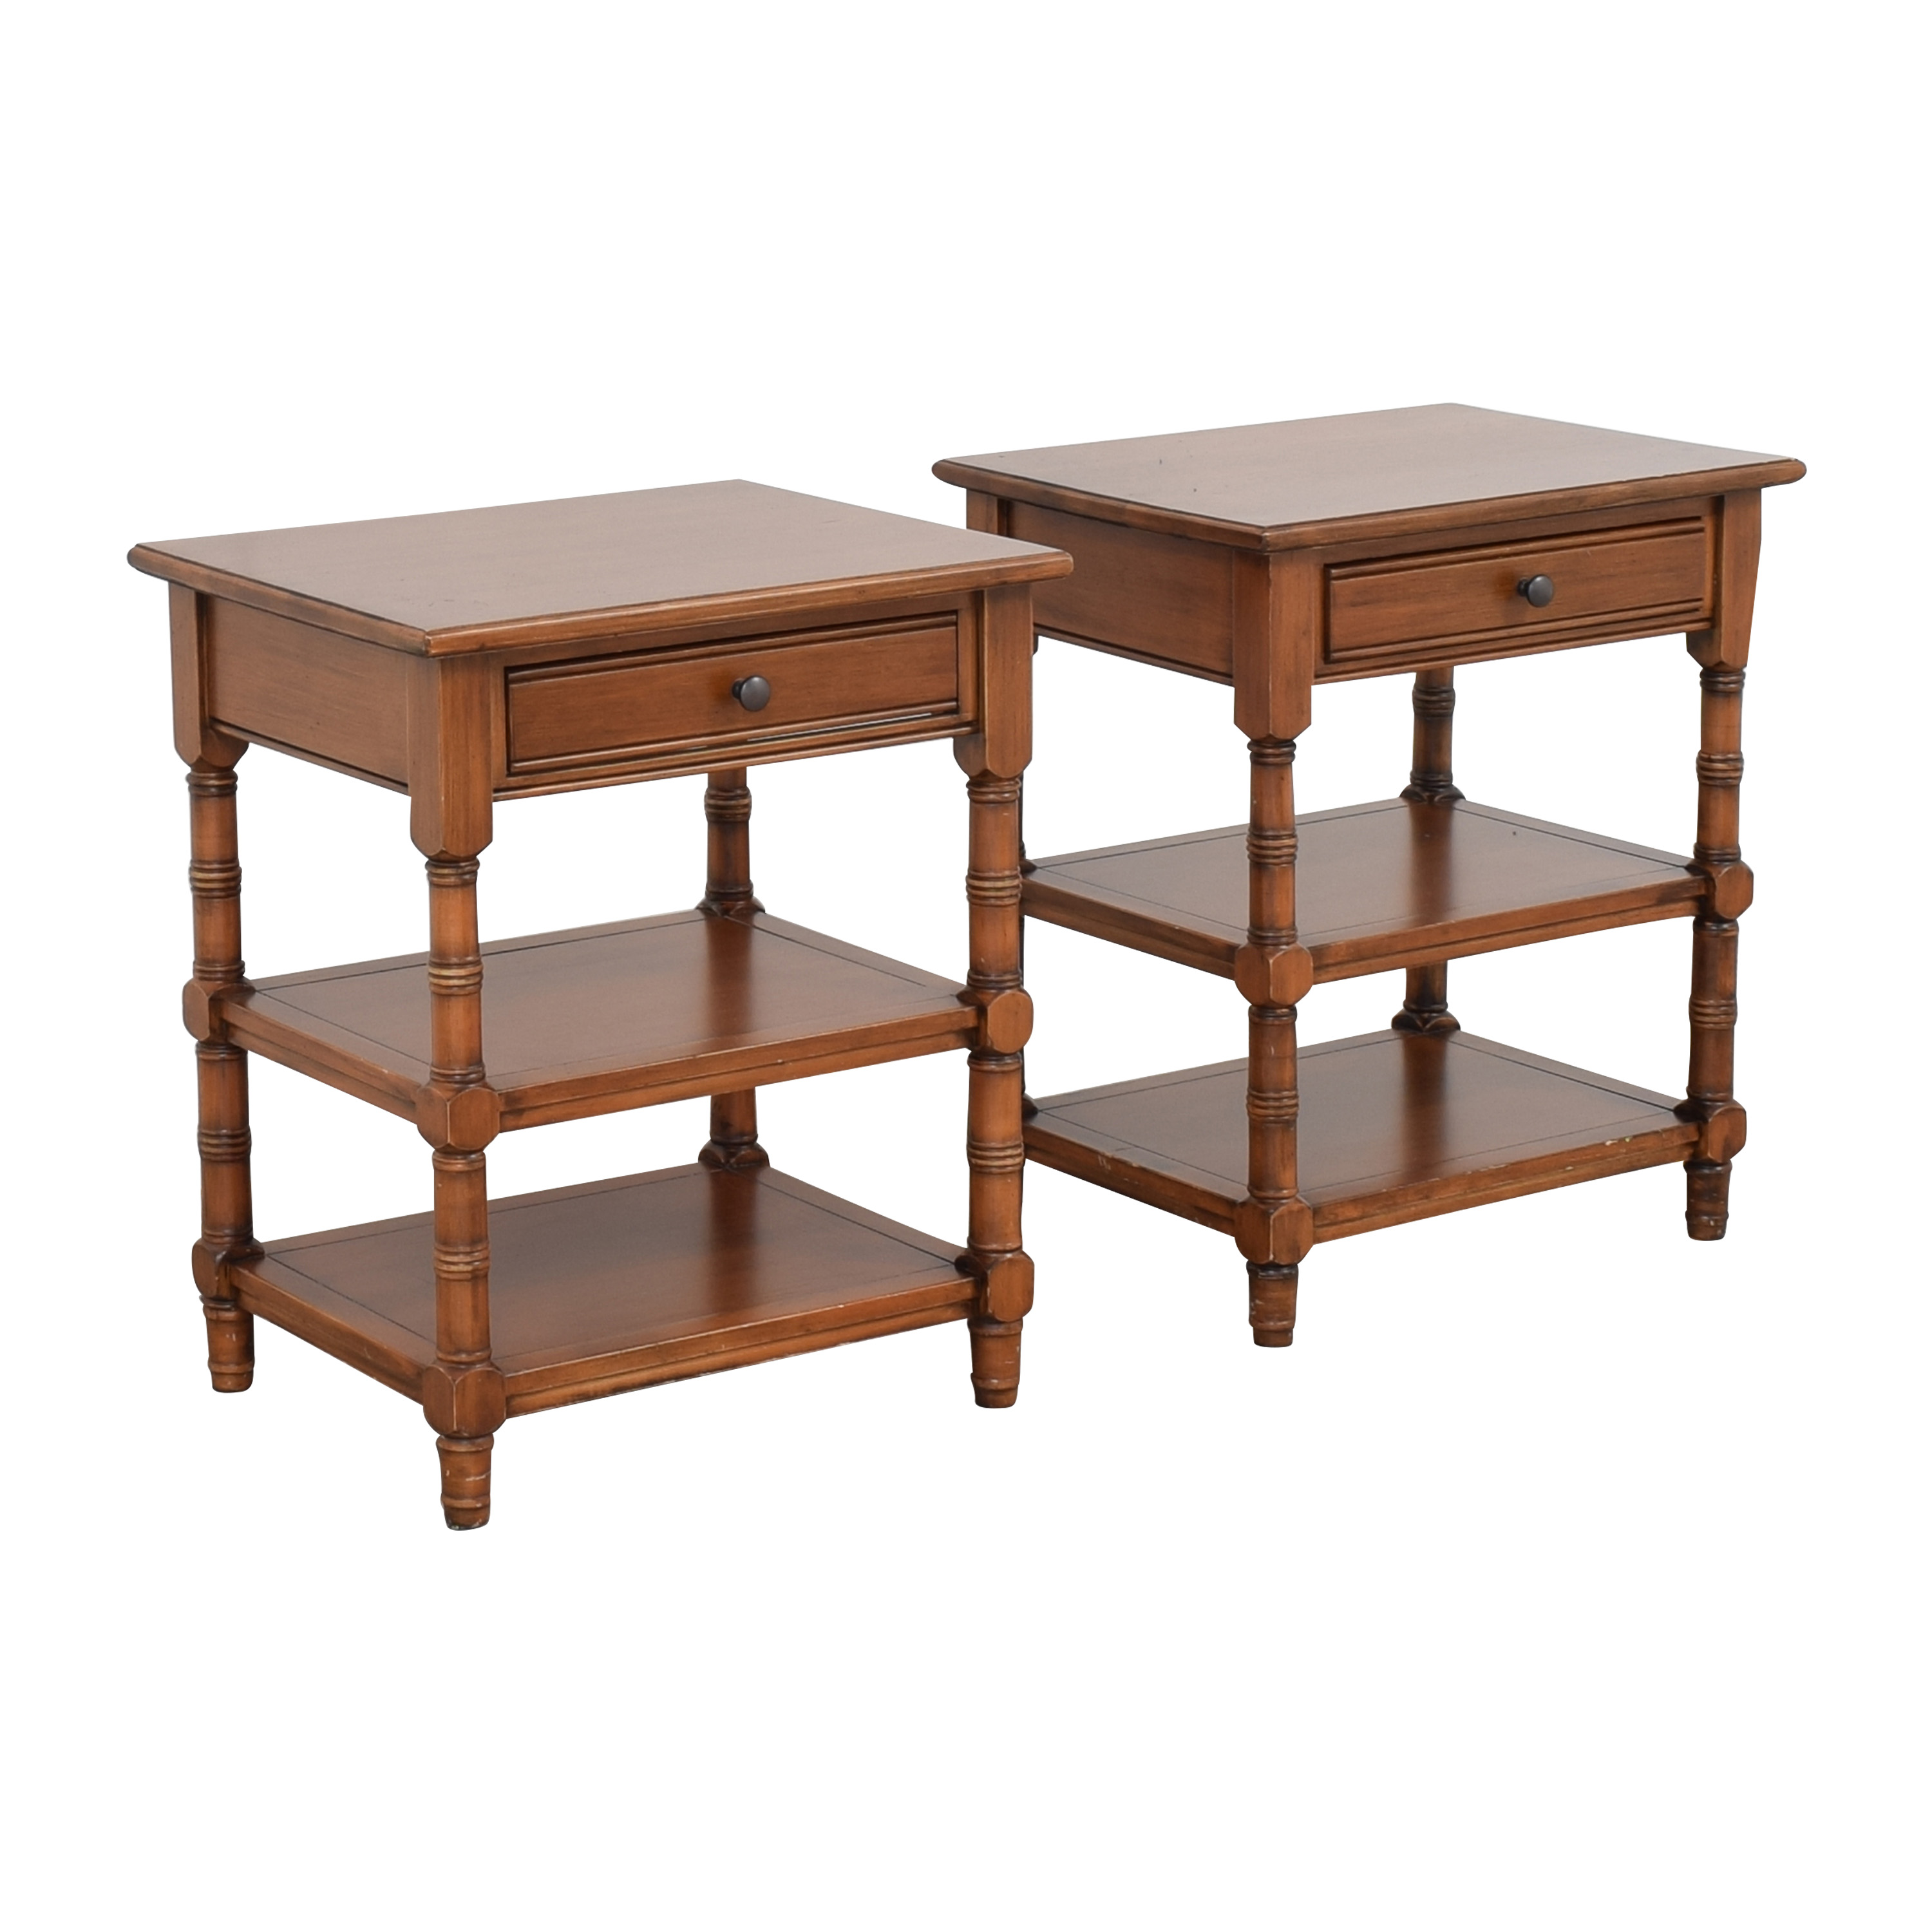 Country Willow Country Willow Nightstands second hand